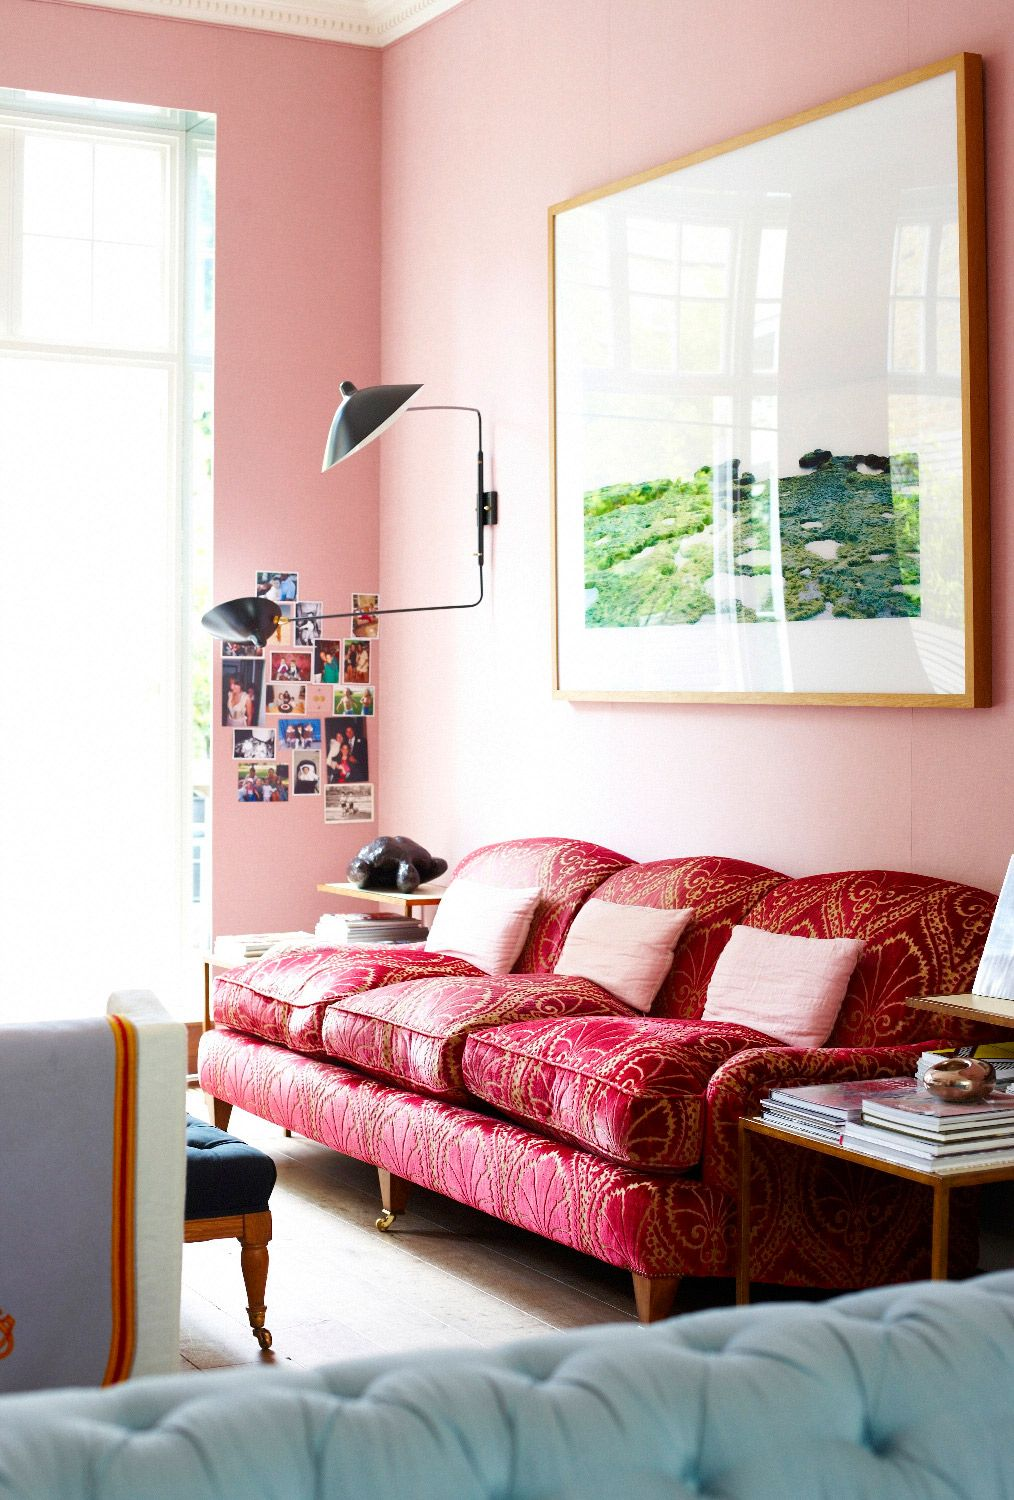 9 Pretty In Pink Rooms For Your Feminine Side Via Mydomaine Wild Rose Photo Joanna Henderson For Vogue Living Au Pink Living Room Pink Home Decor Home Decor